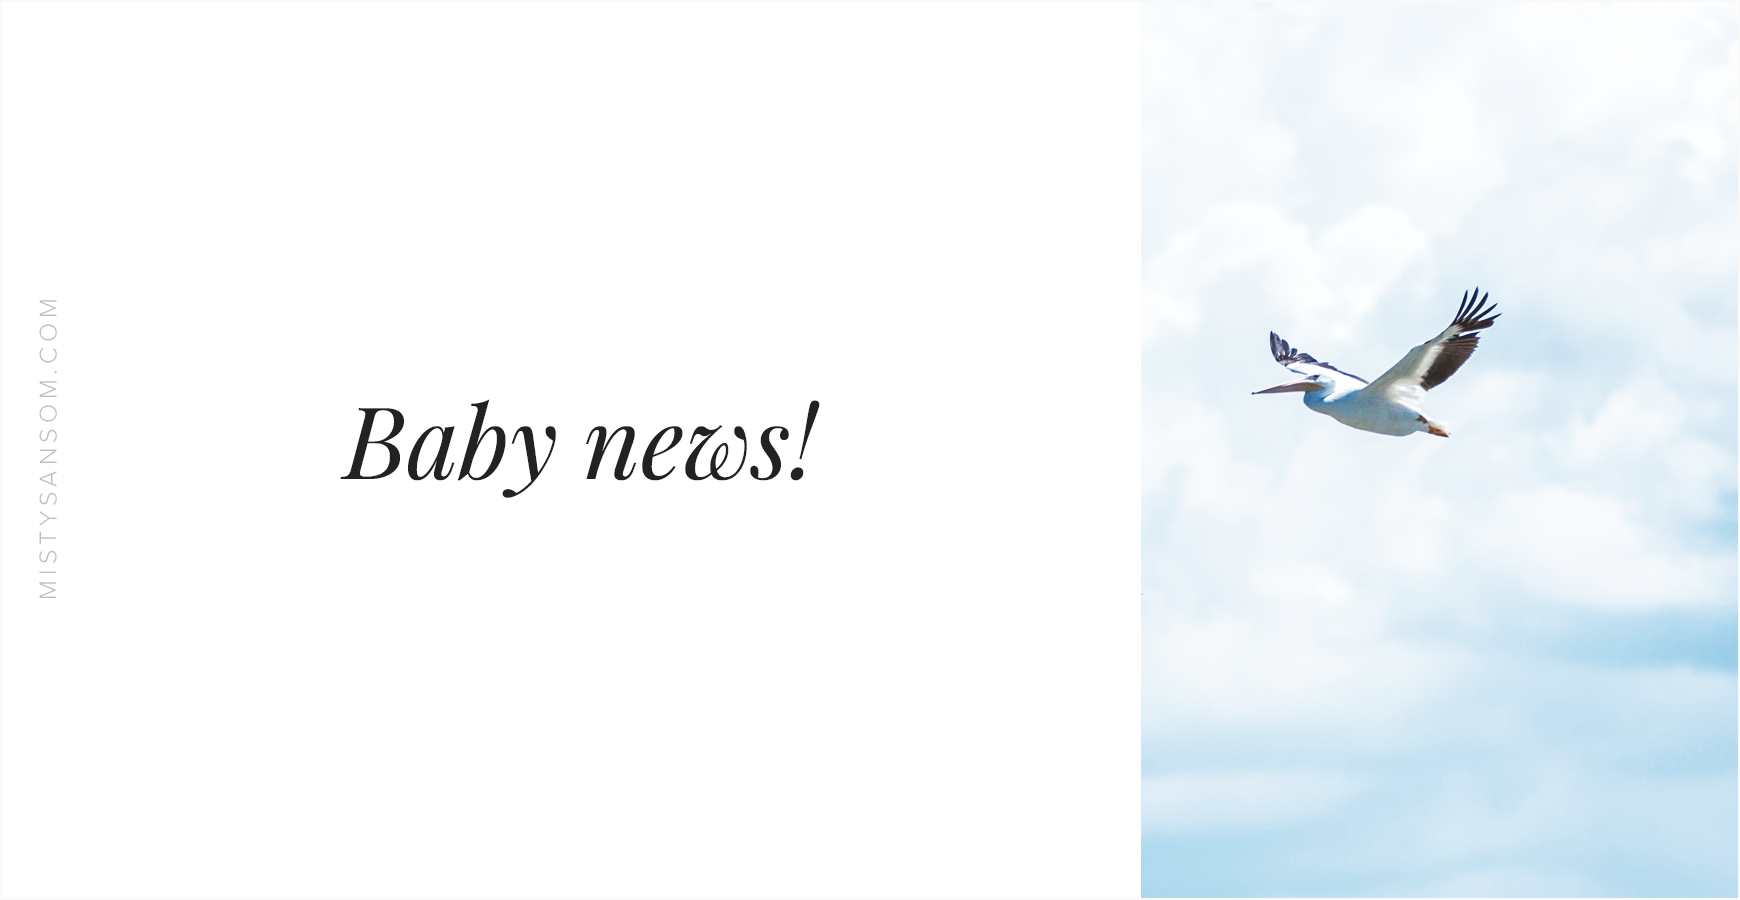 New-Baby-news.png